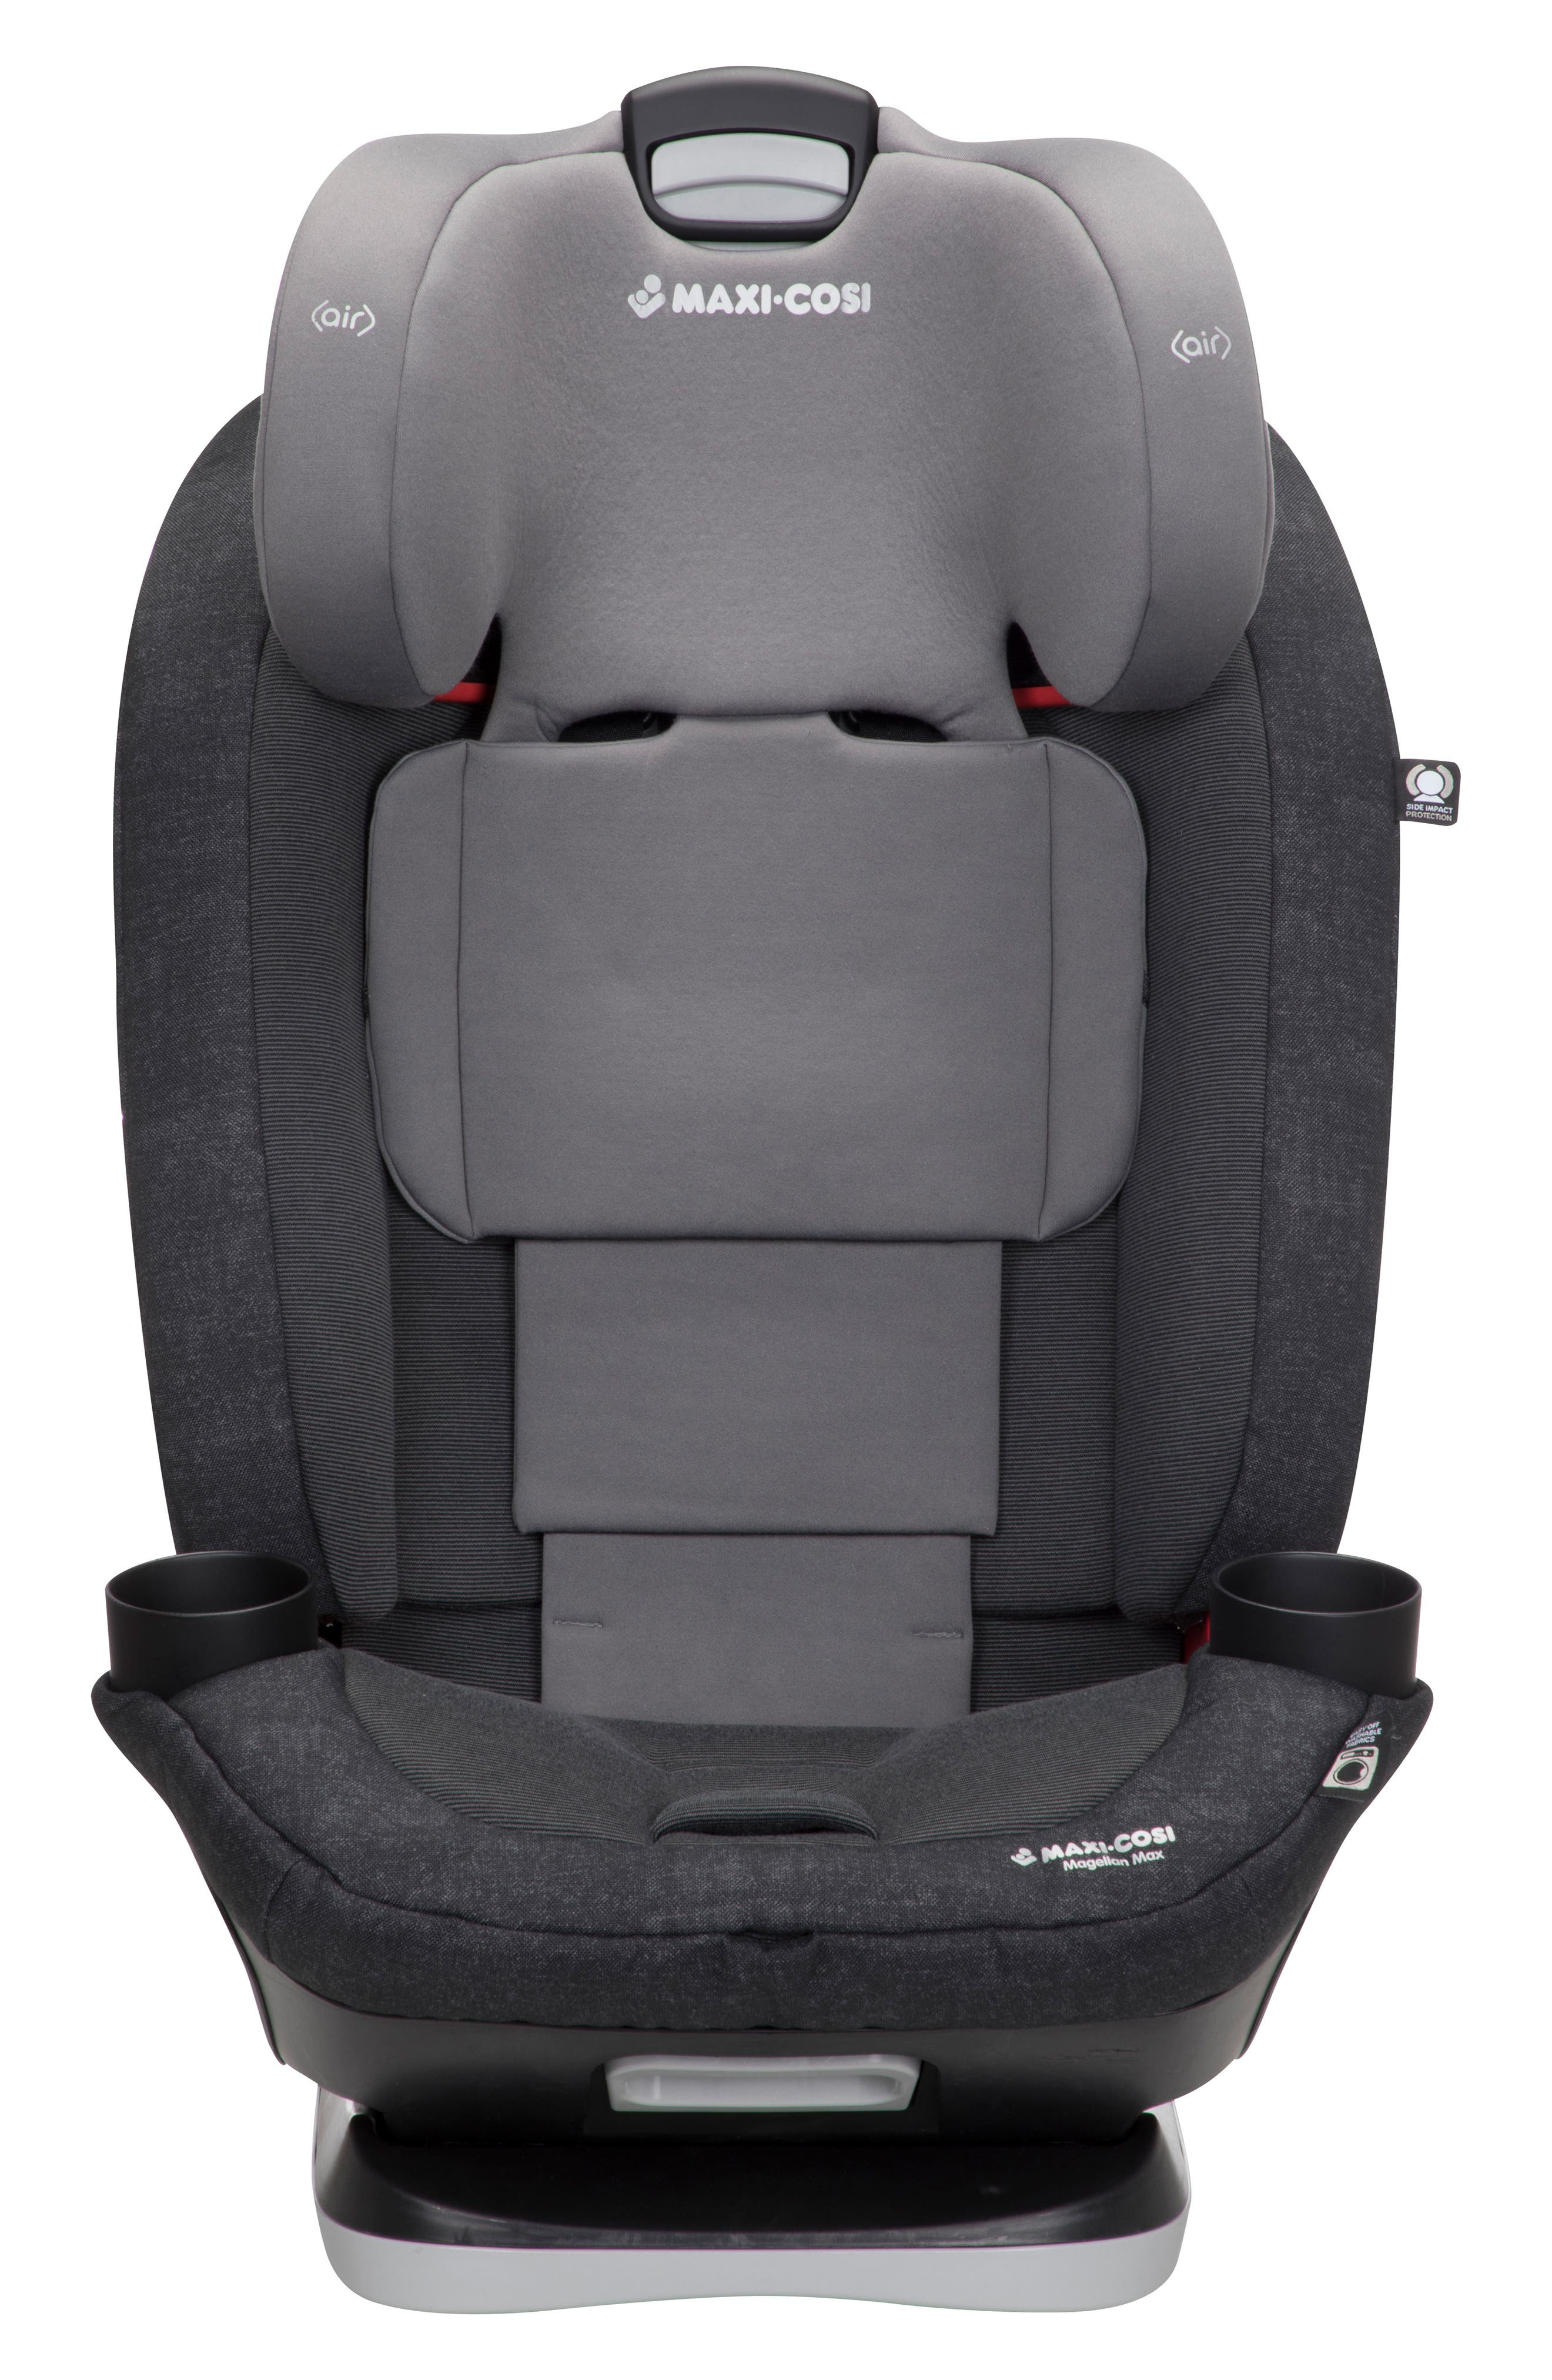 Magellan Max 2018 5-in-1 Convertible Car Seat,                             Alternate thumbnail 5, color,                             NOMAD BLACK